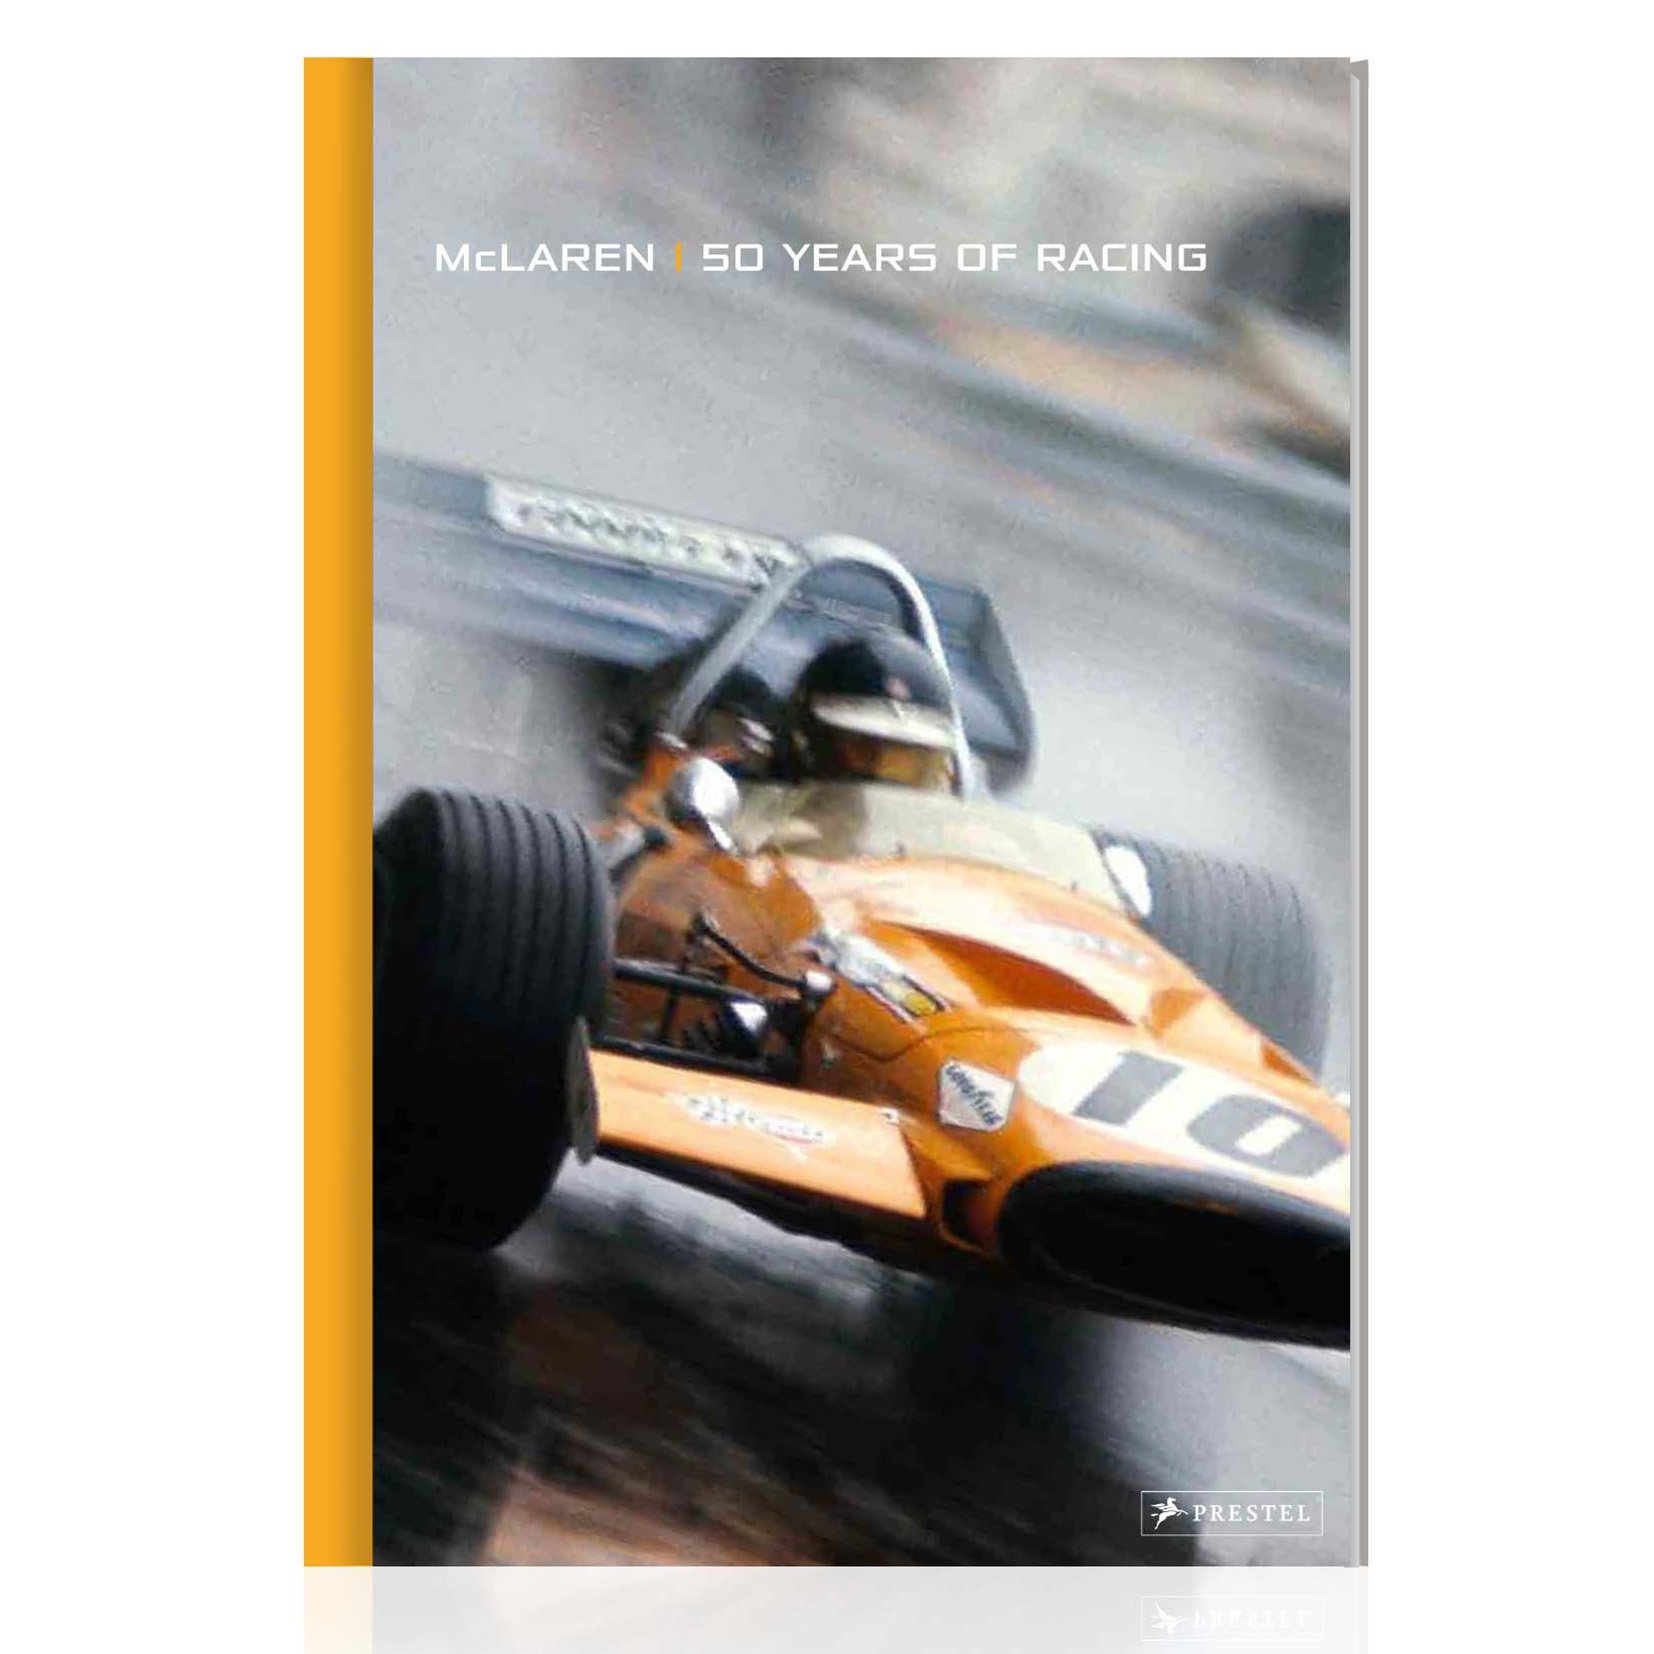 McLaren 50 Years of Racing - Limited Edition Book